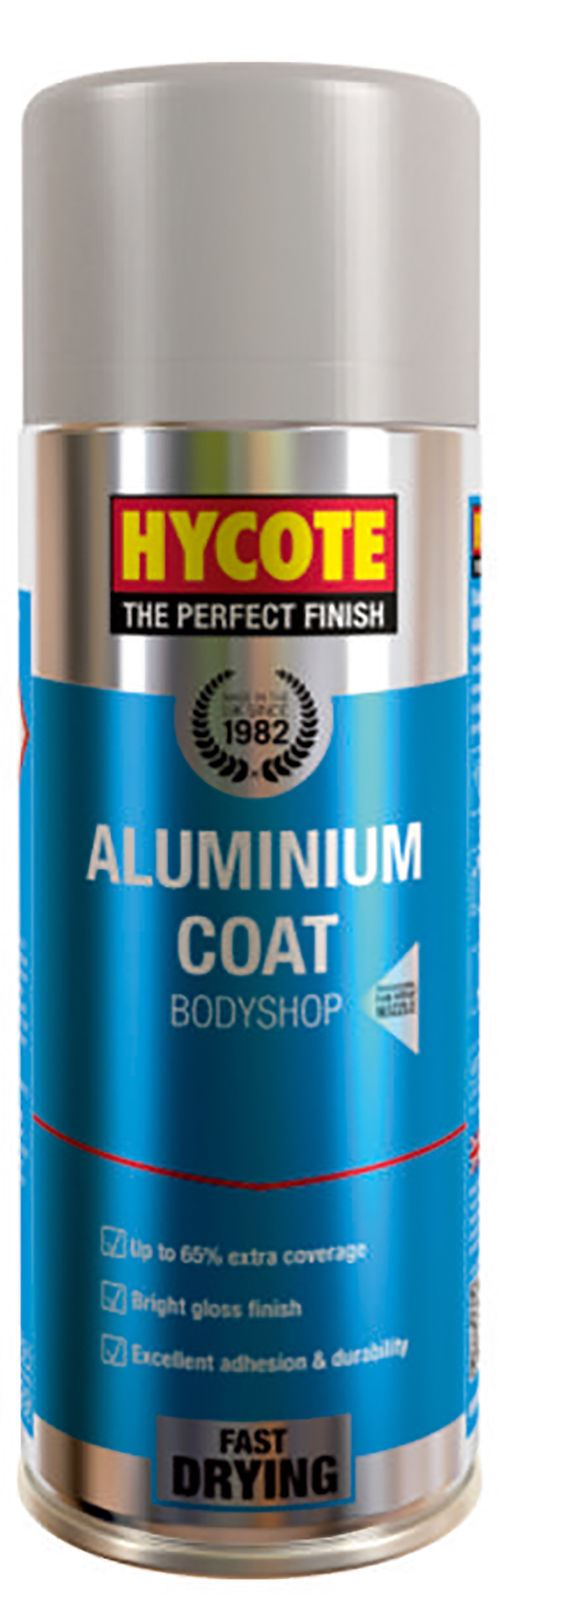 Hycote Bodyshop Aluminium Coat Paint - 400ml